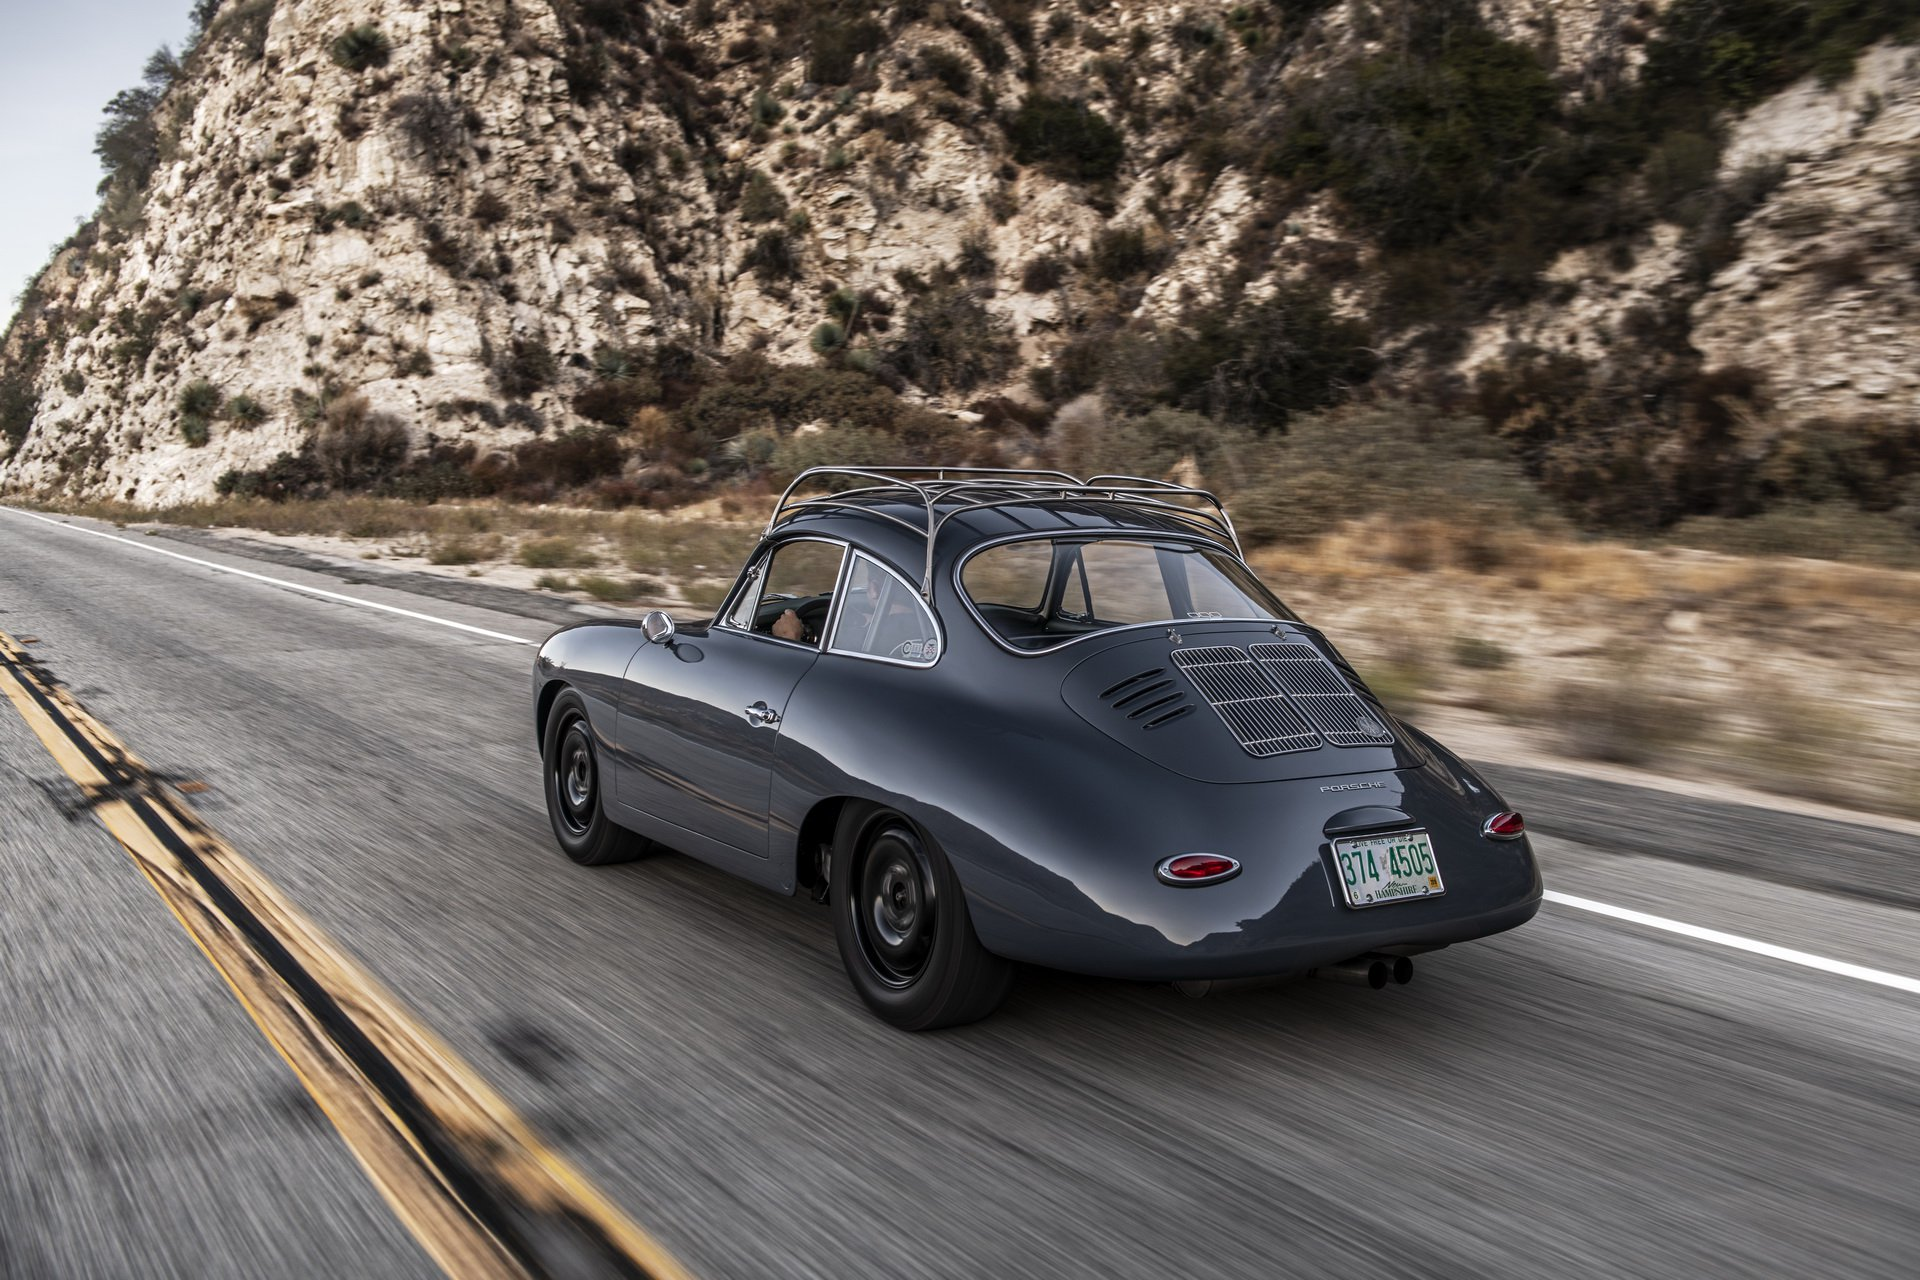 AWD Porsche 356 Coupe by Emory Motorsports (45)